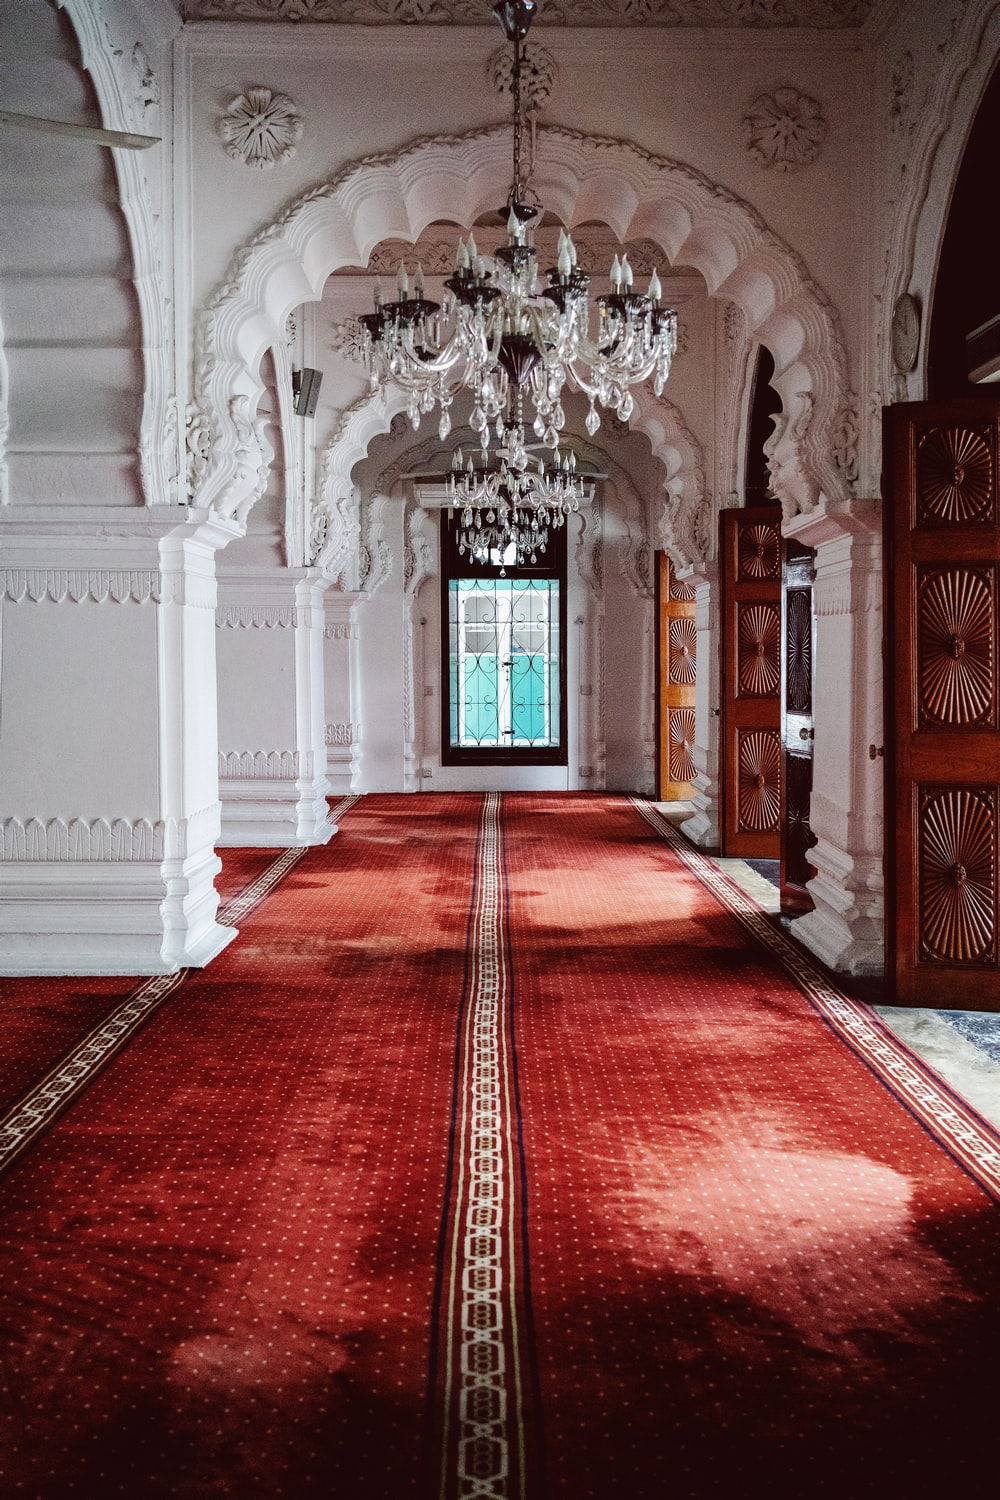 red and white carpet on hallway